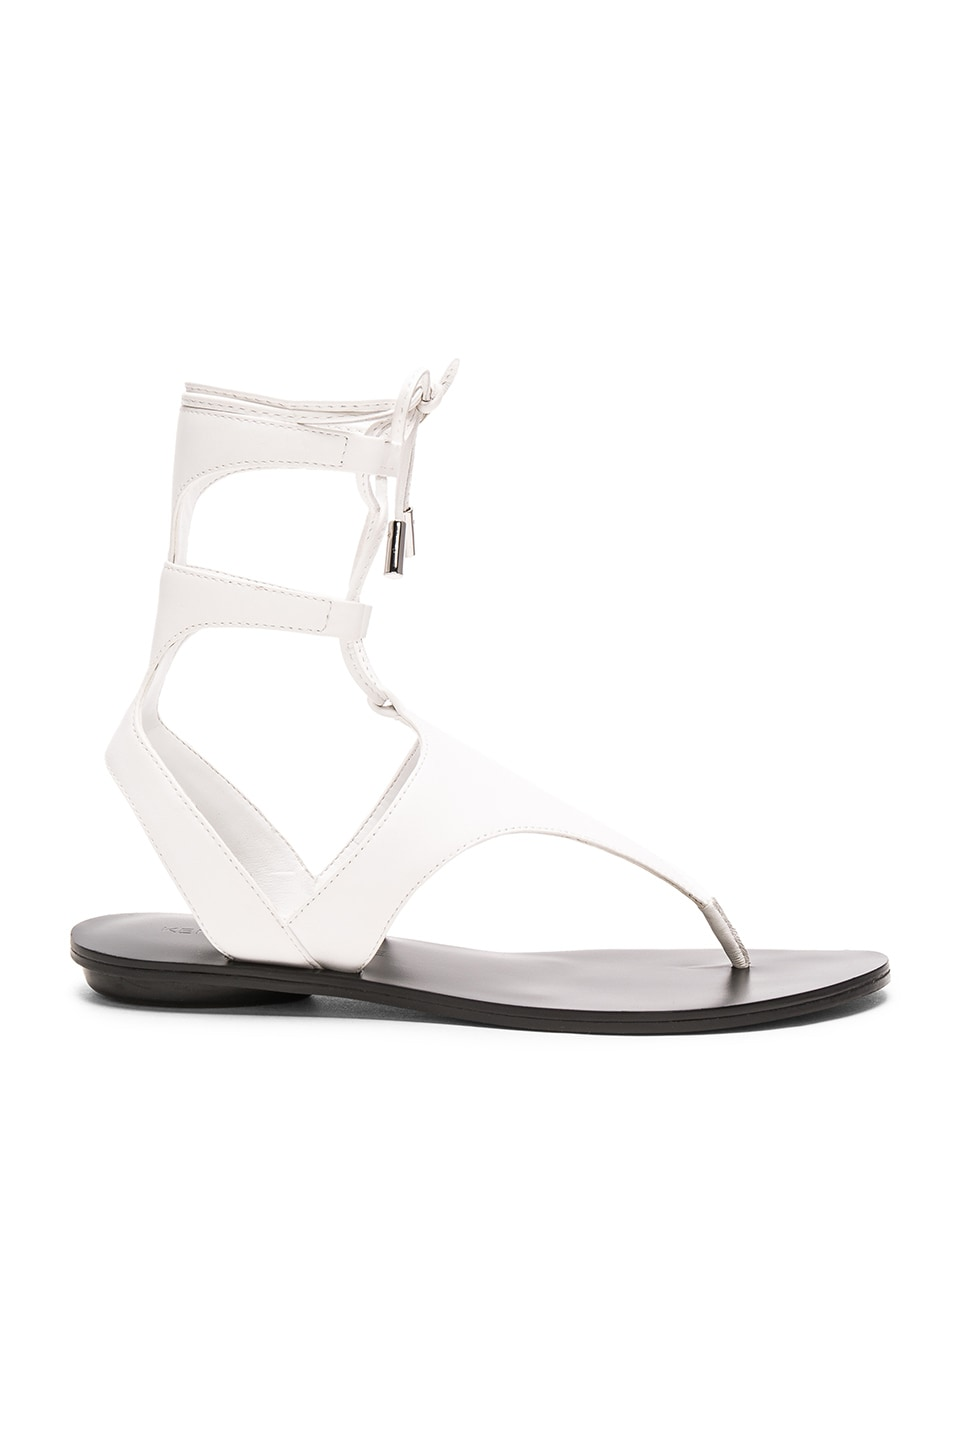 KENDALL + KYLIE Faris Sandal in White